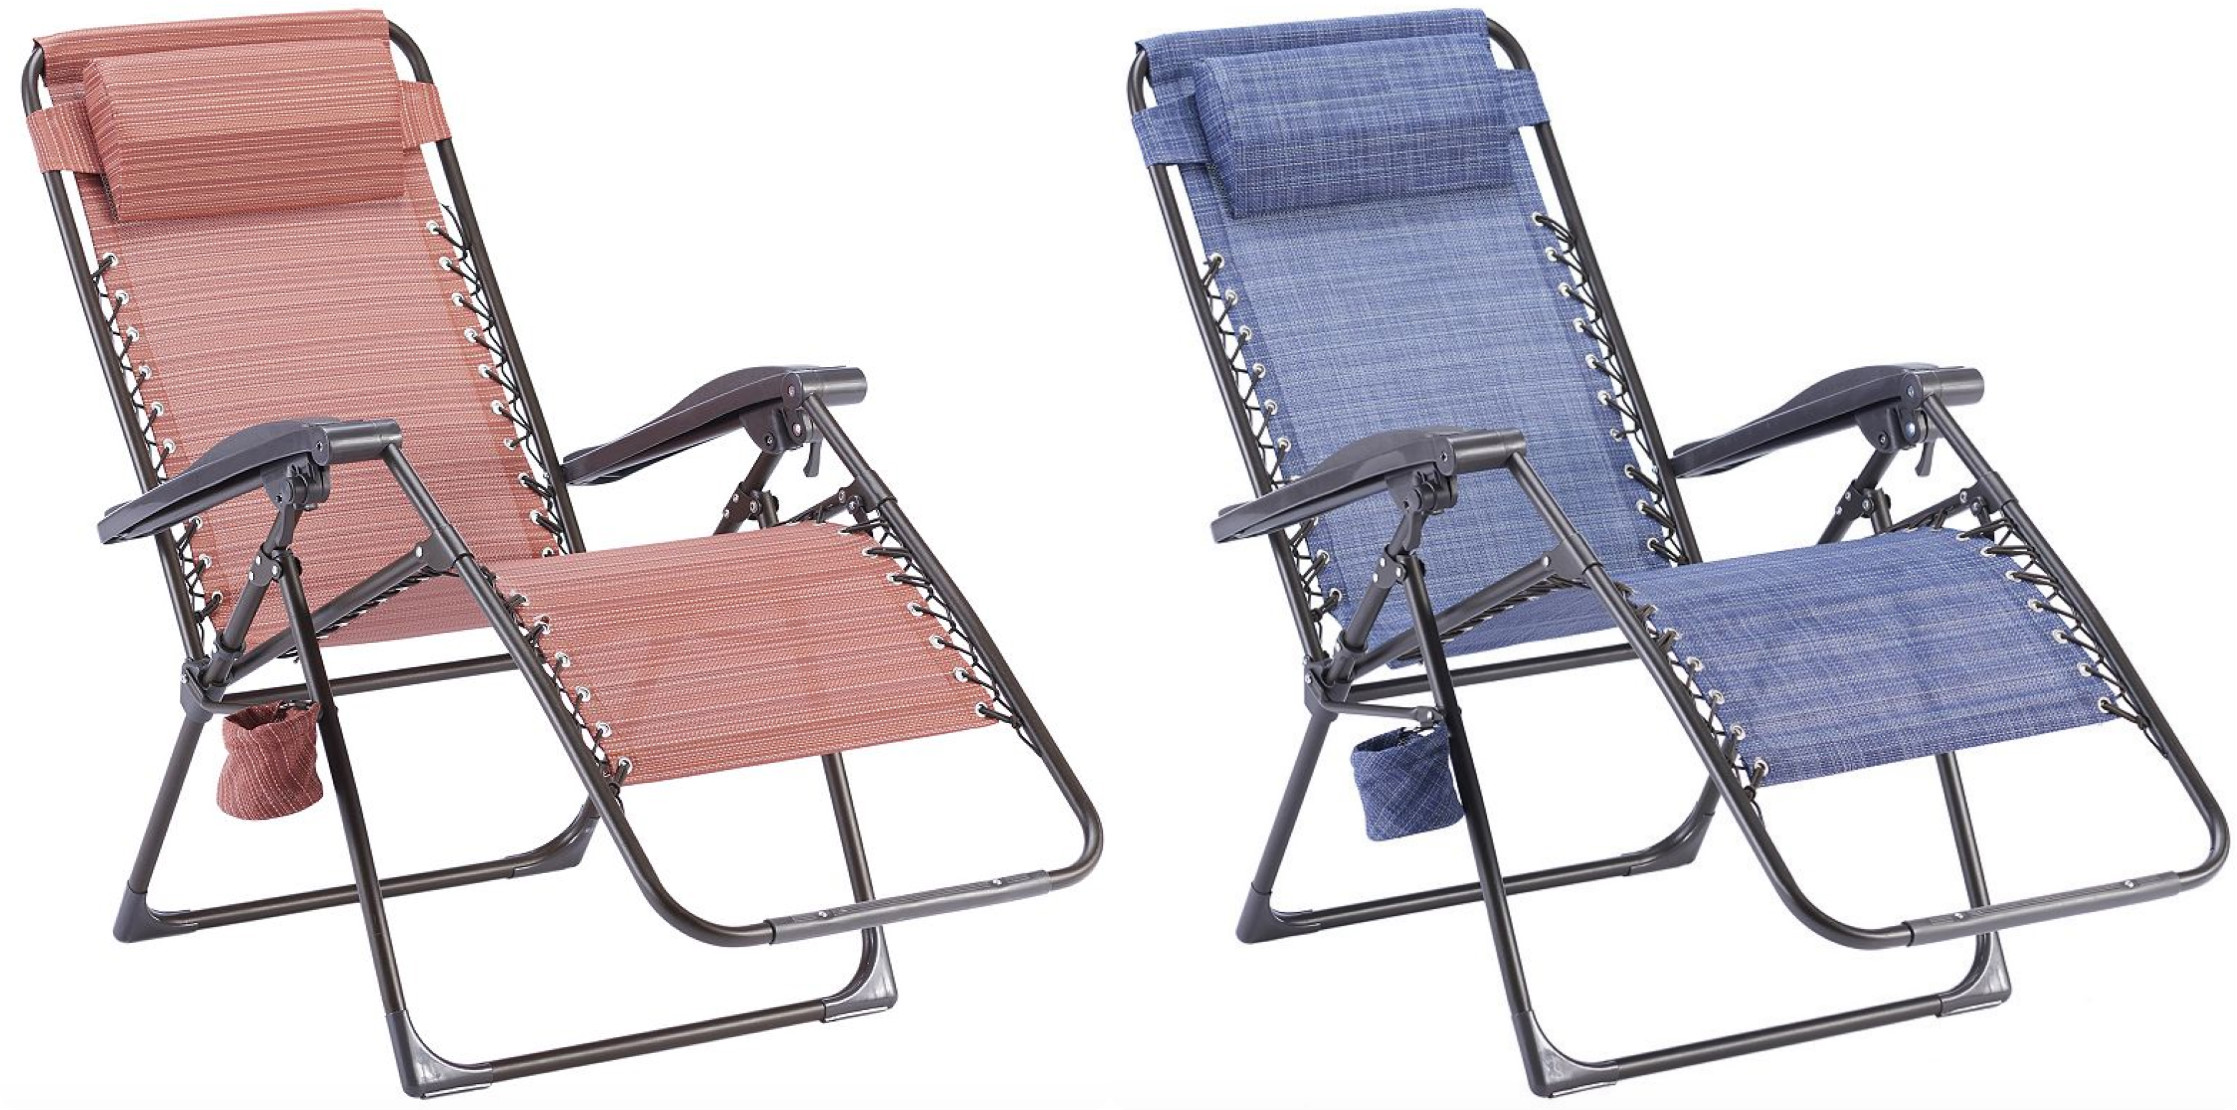 Kohls Folding Chairs Kohl S Sonoma Goods For Life Patio Antigravity Chairs Only